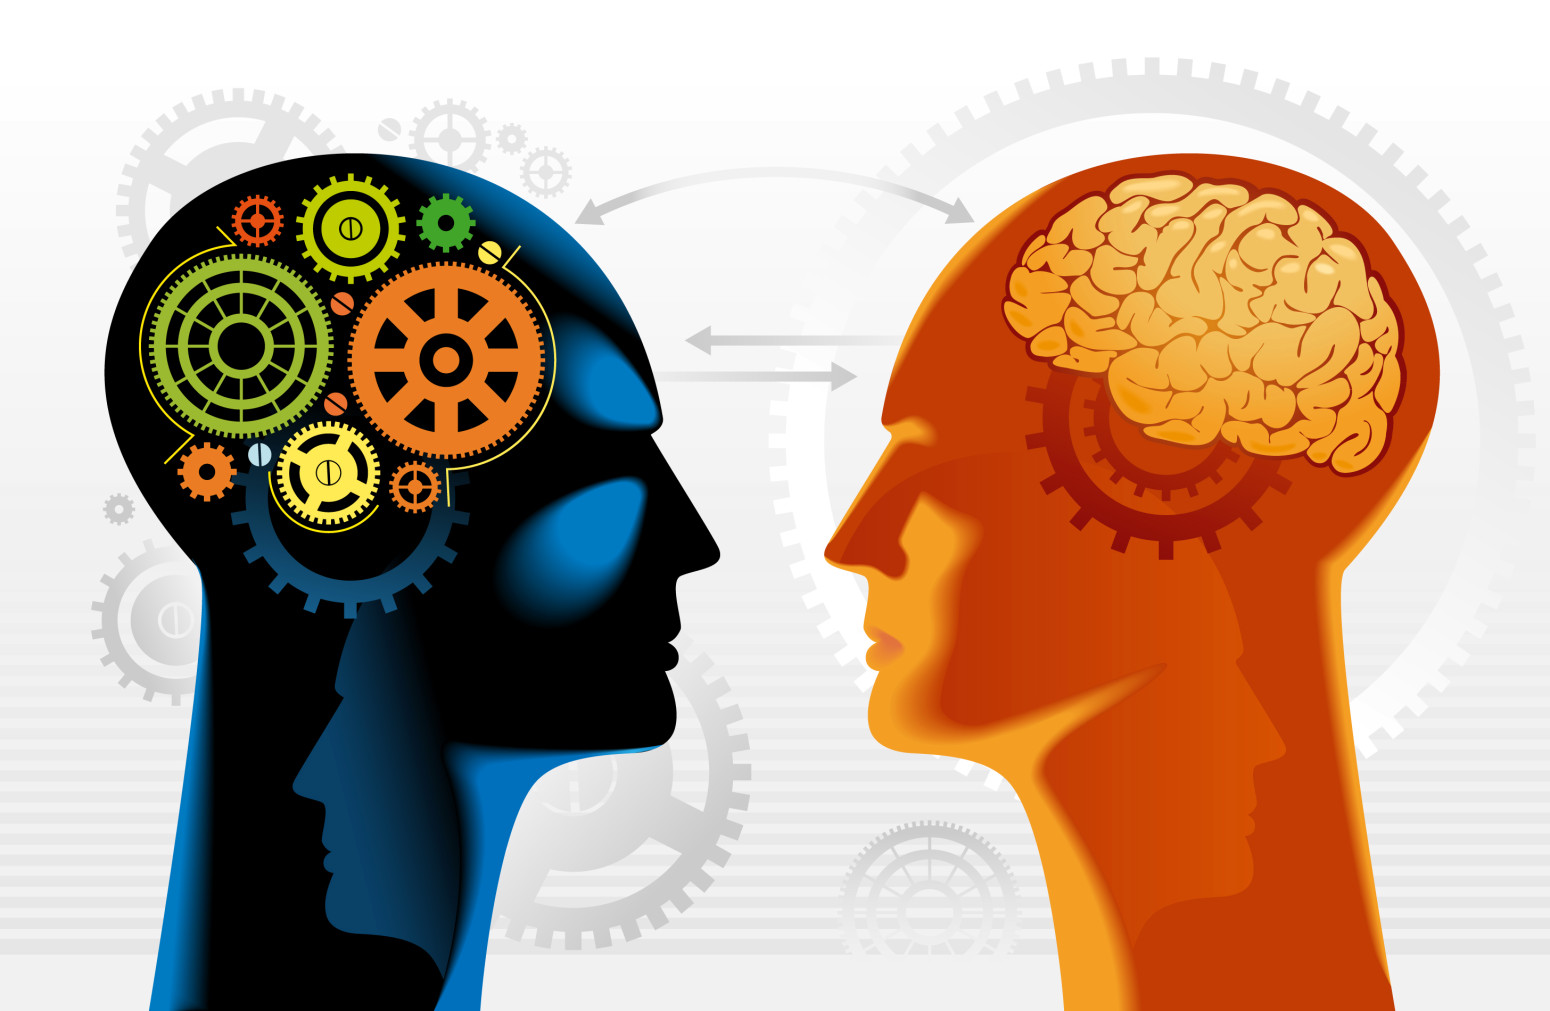 Machine learning vs Traditional methods